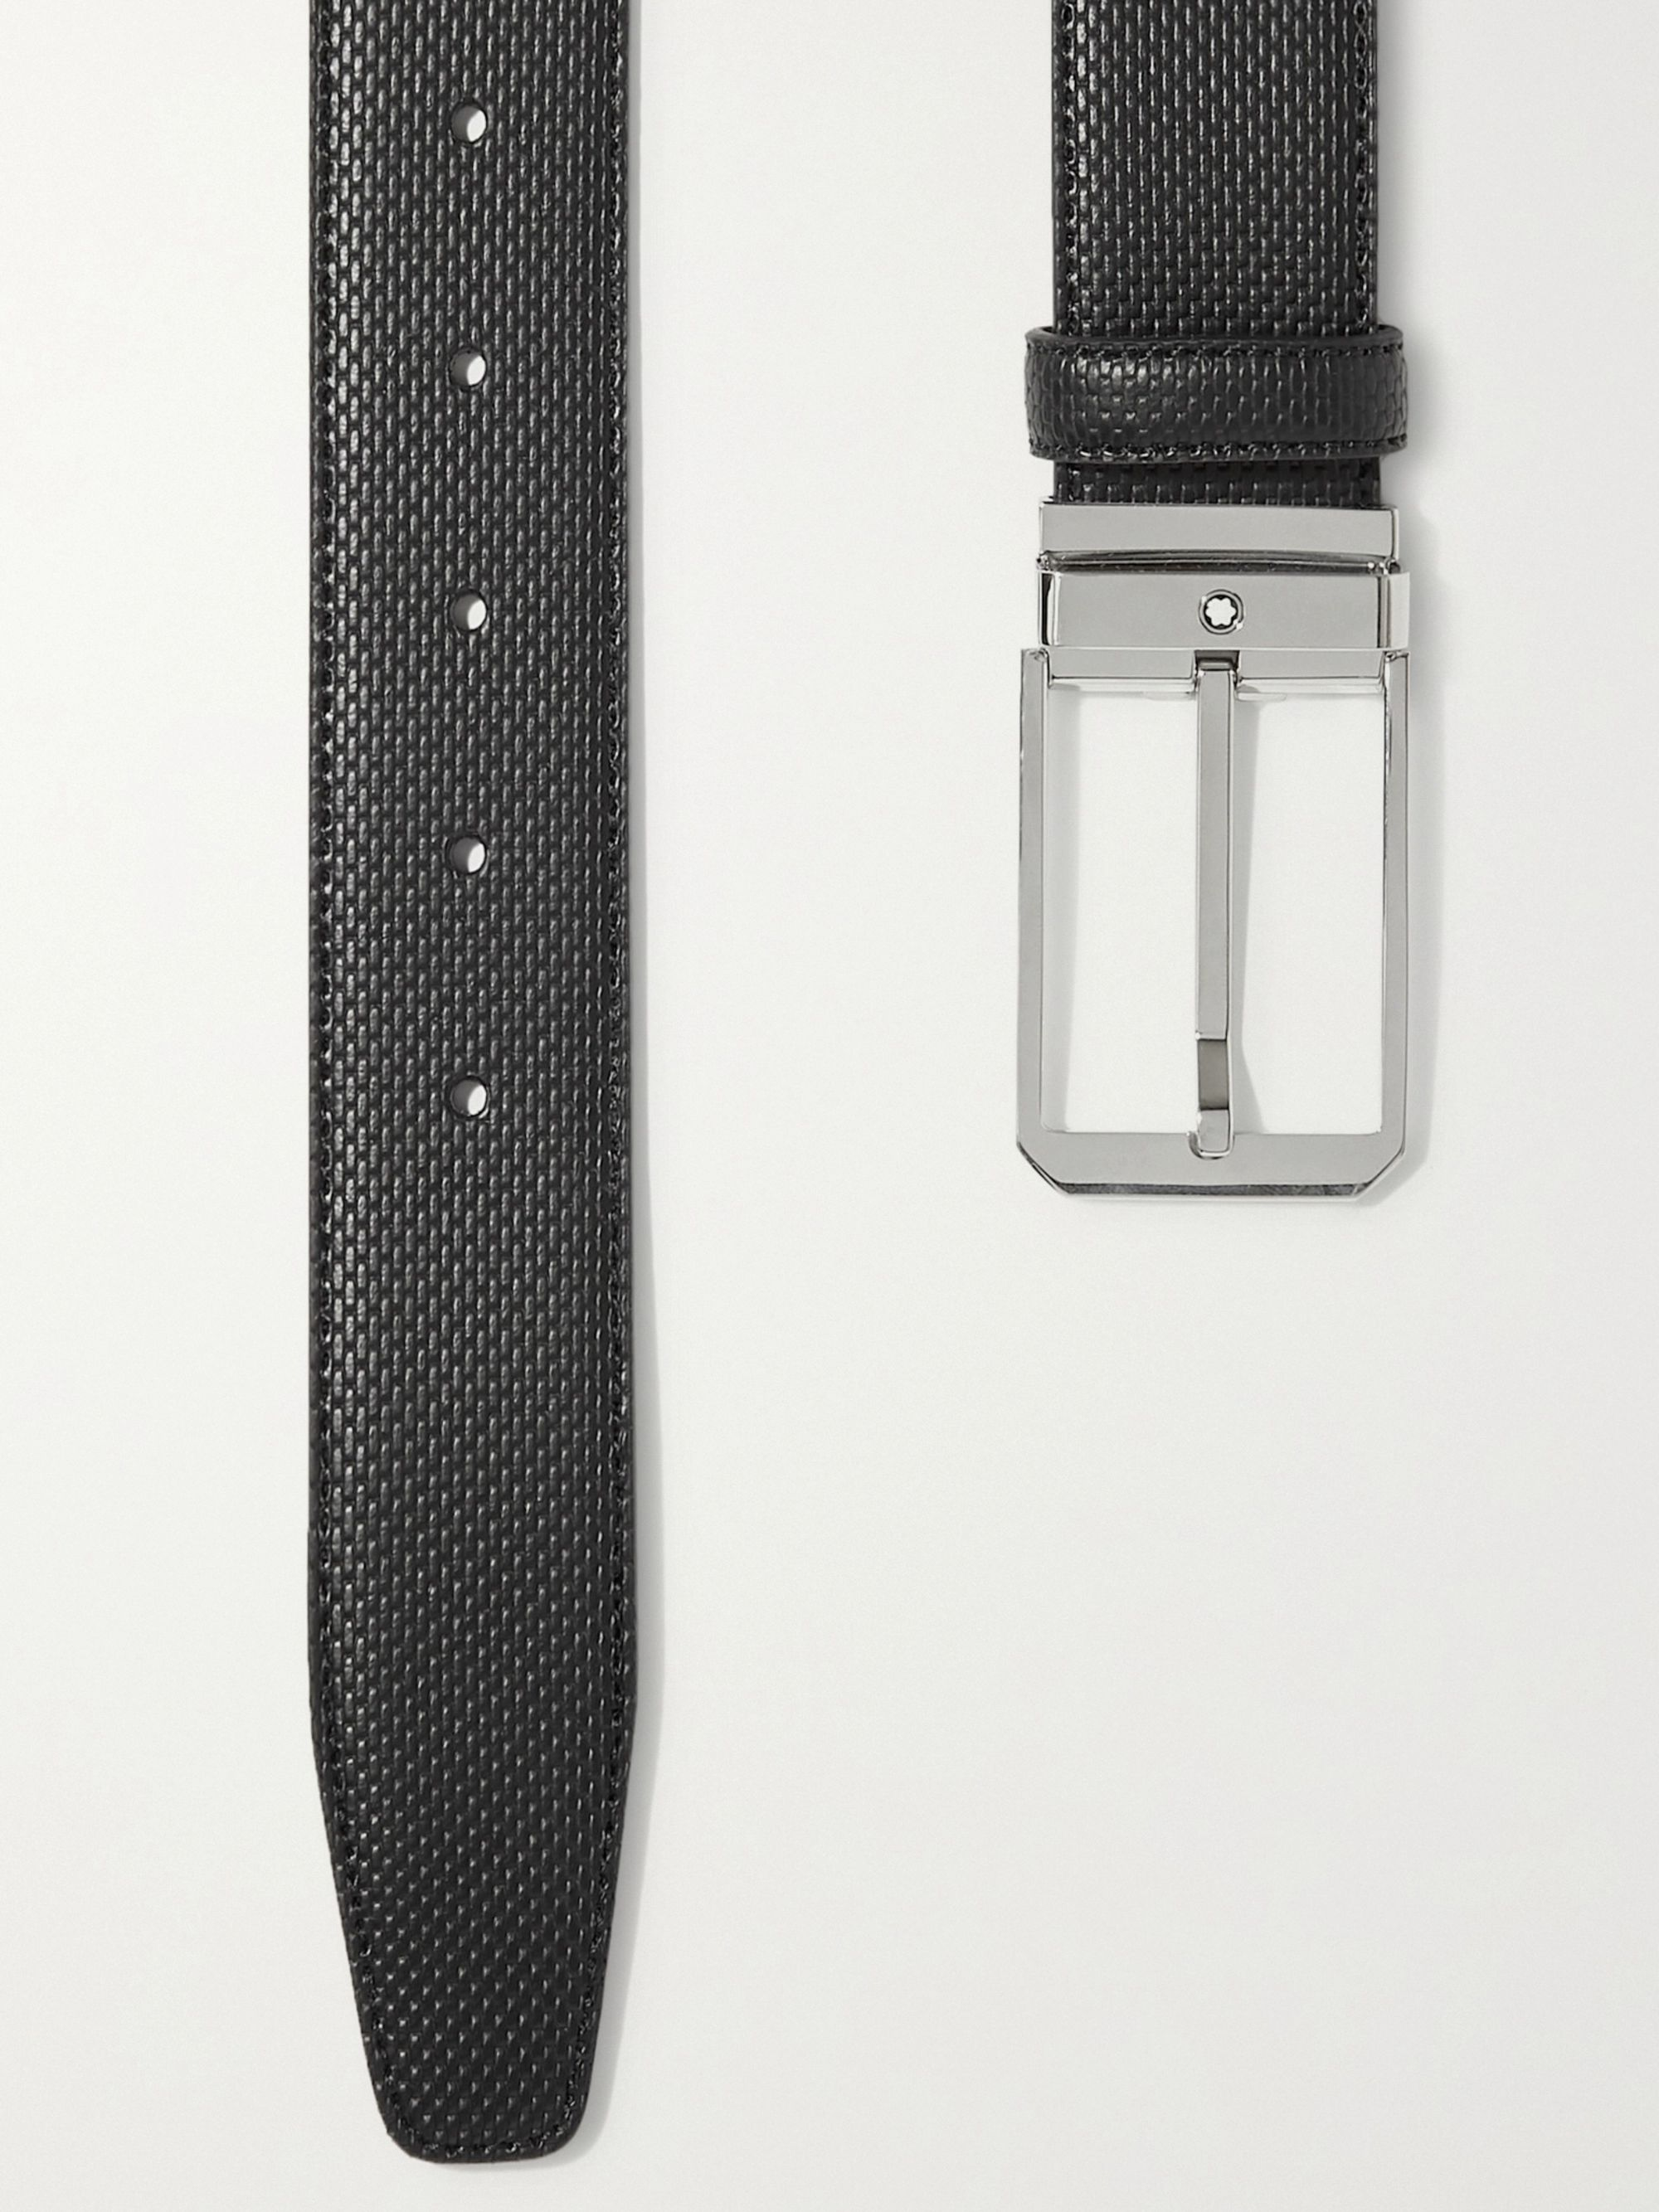 Montblanc 3.5cm Woven Leather Belt and Cardholder Gift Set